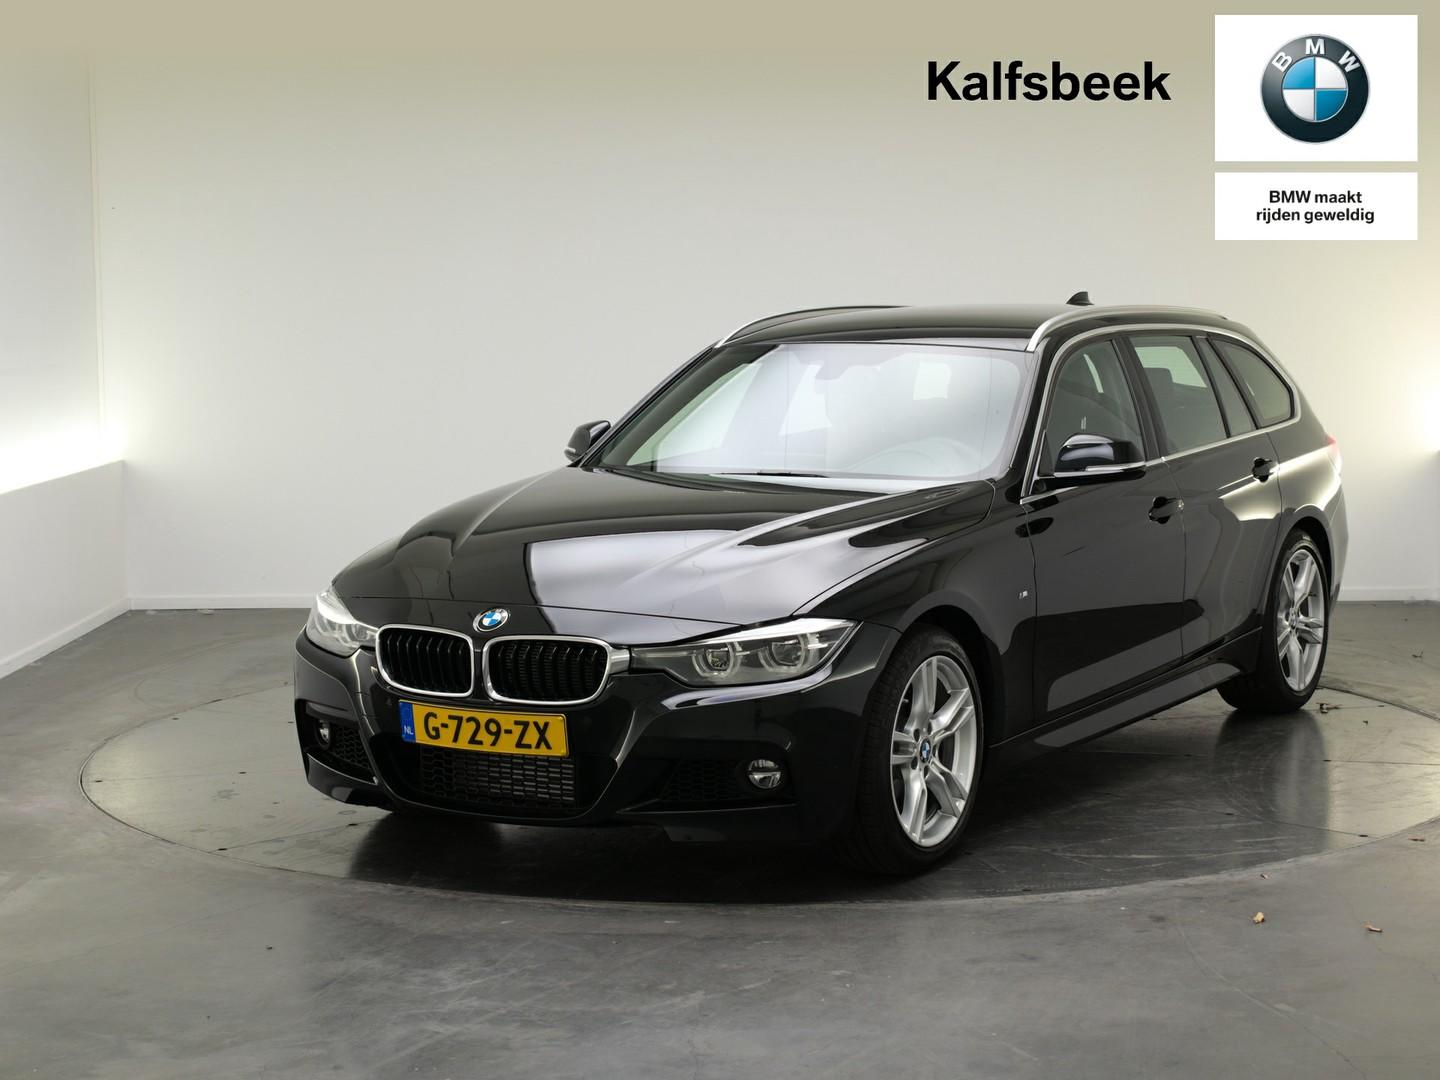 Bmw 3 serie Touring 318i m sport corporate